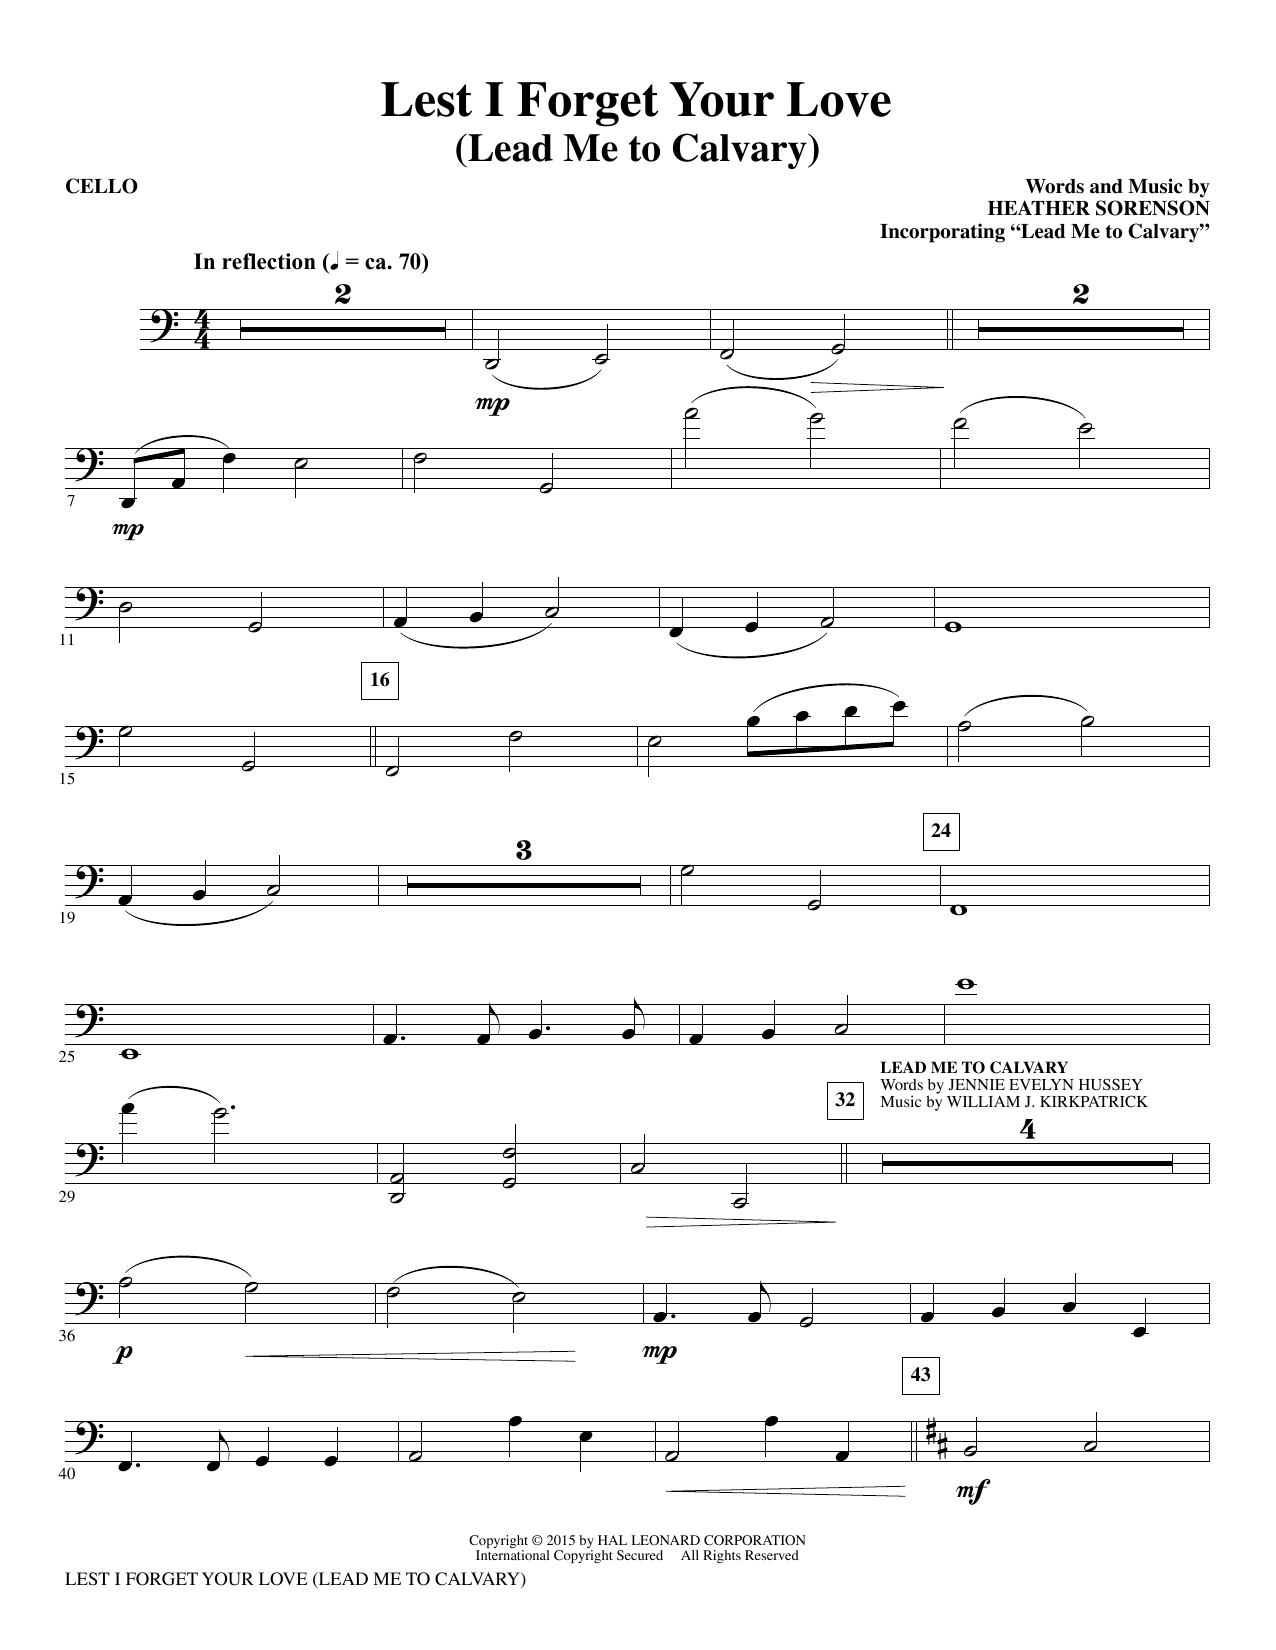 Lest I Forget Your Love - Cello sheet music